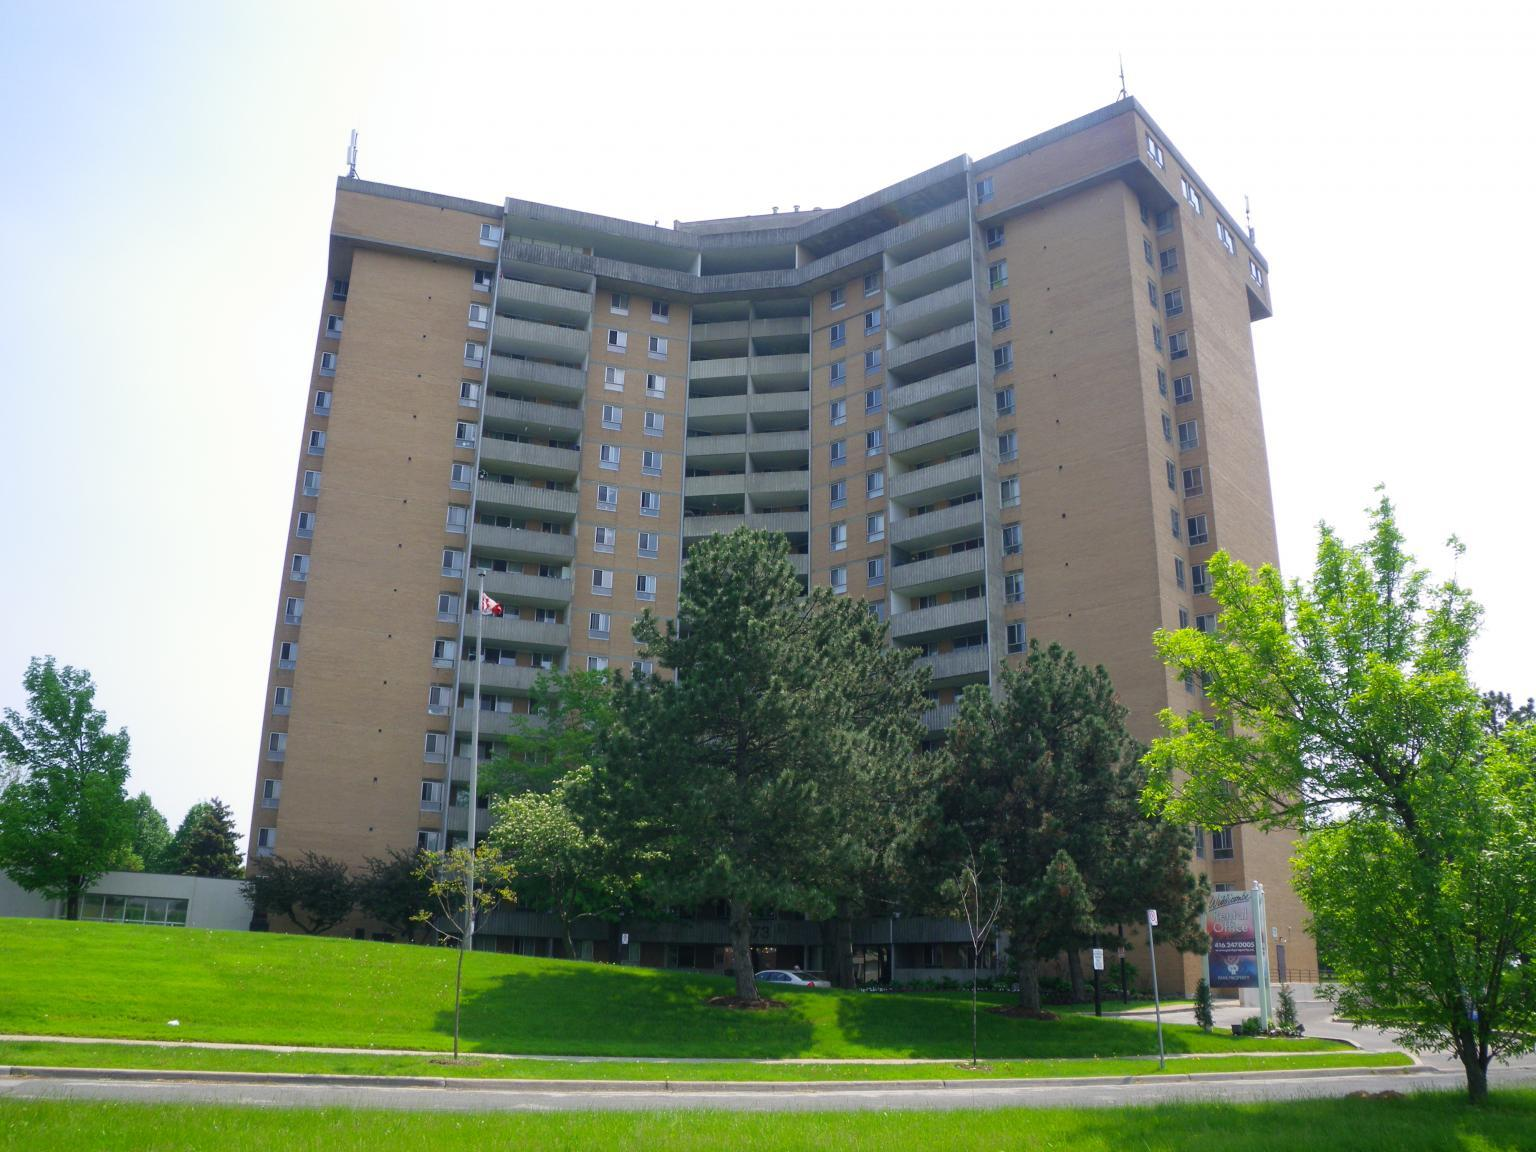 63, 73 and 120 Widdicombe Hill Boulevard Apartments photo #1